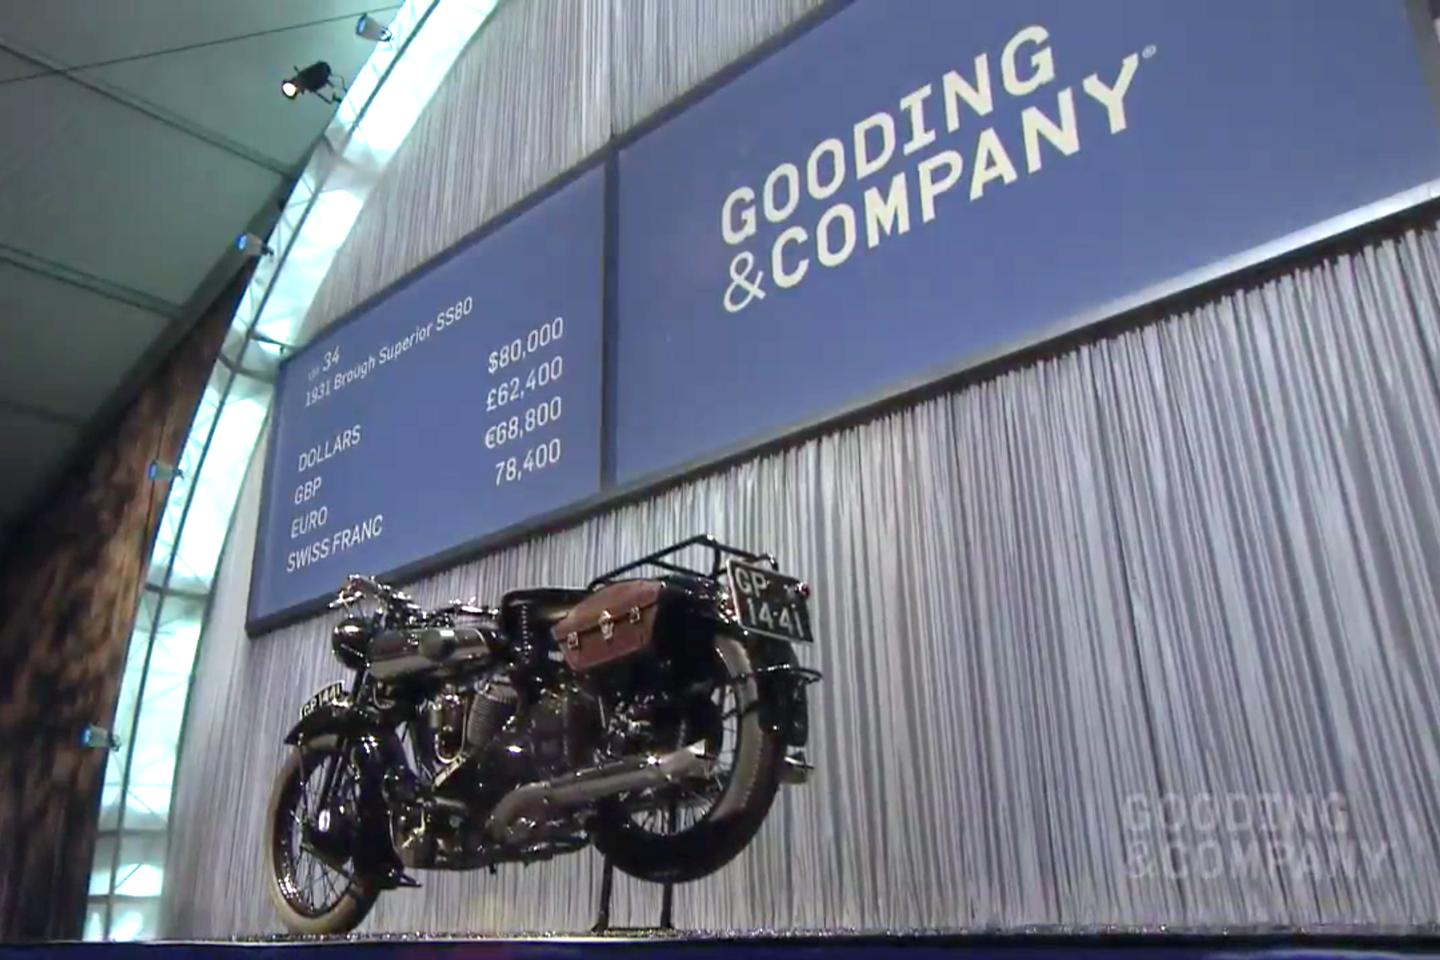 Soldat a Gooding auction at Pebble Beach in 2011 for $176,000, this1931 Brough Superior SS80 was the most expensive Brough Superior SS80 ever sold at that time.It sold for just$88,000 in a no reserve auction - quite some bargain.